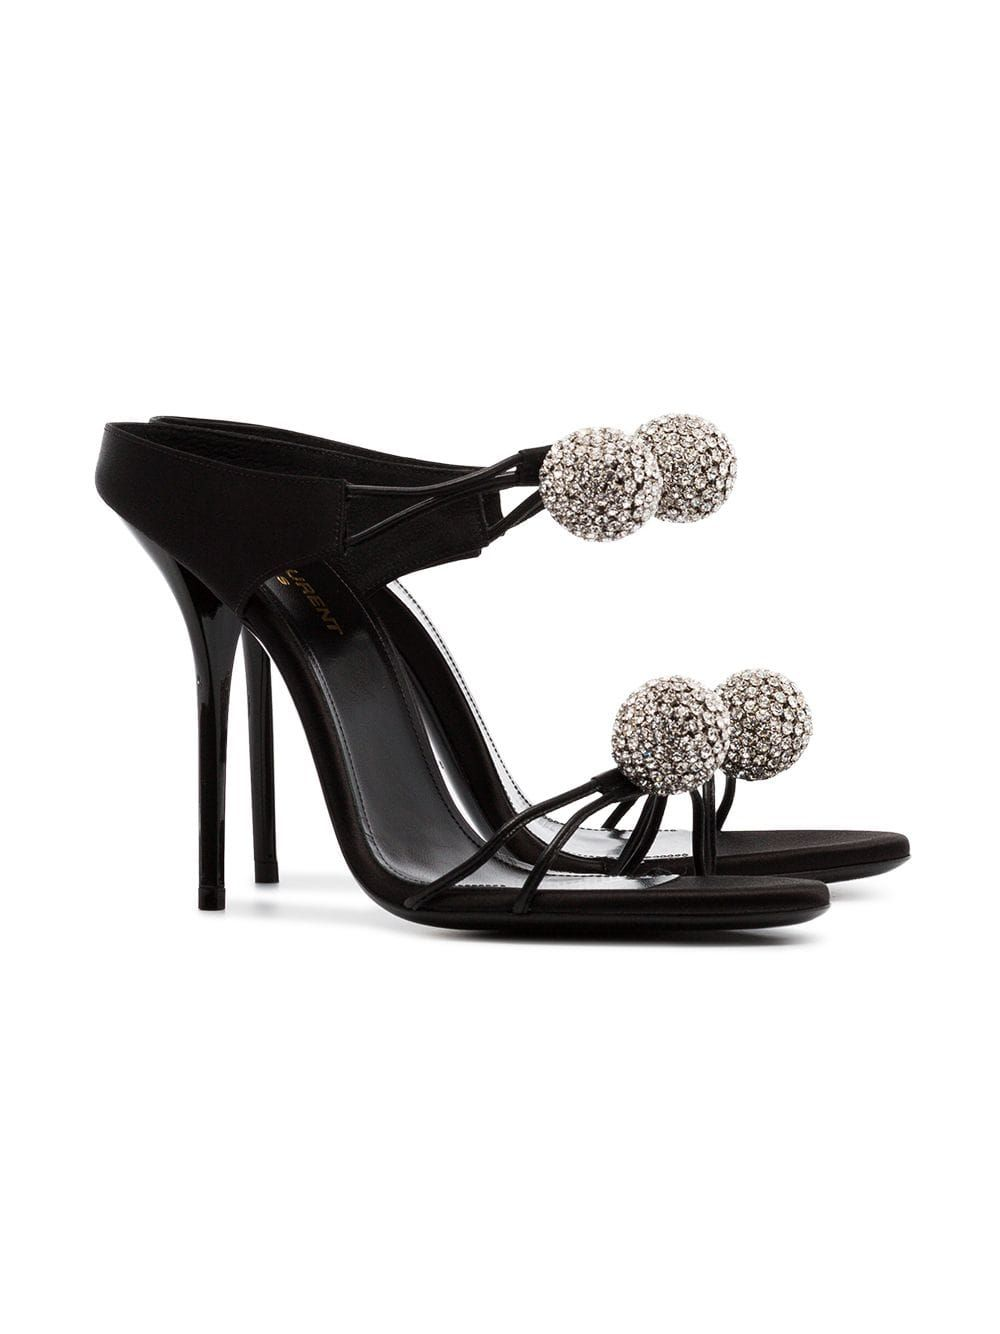 5b804c65eb5 Saint Laurent Pierre 110 Satin And Leather Crystal Ball Shoes in ...